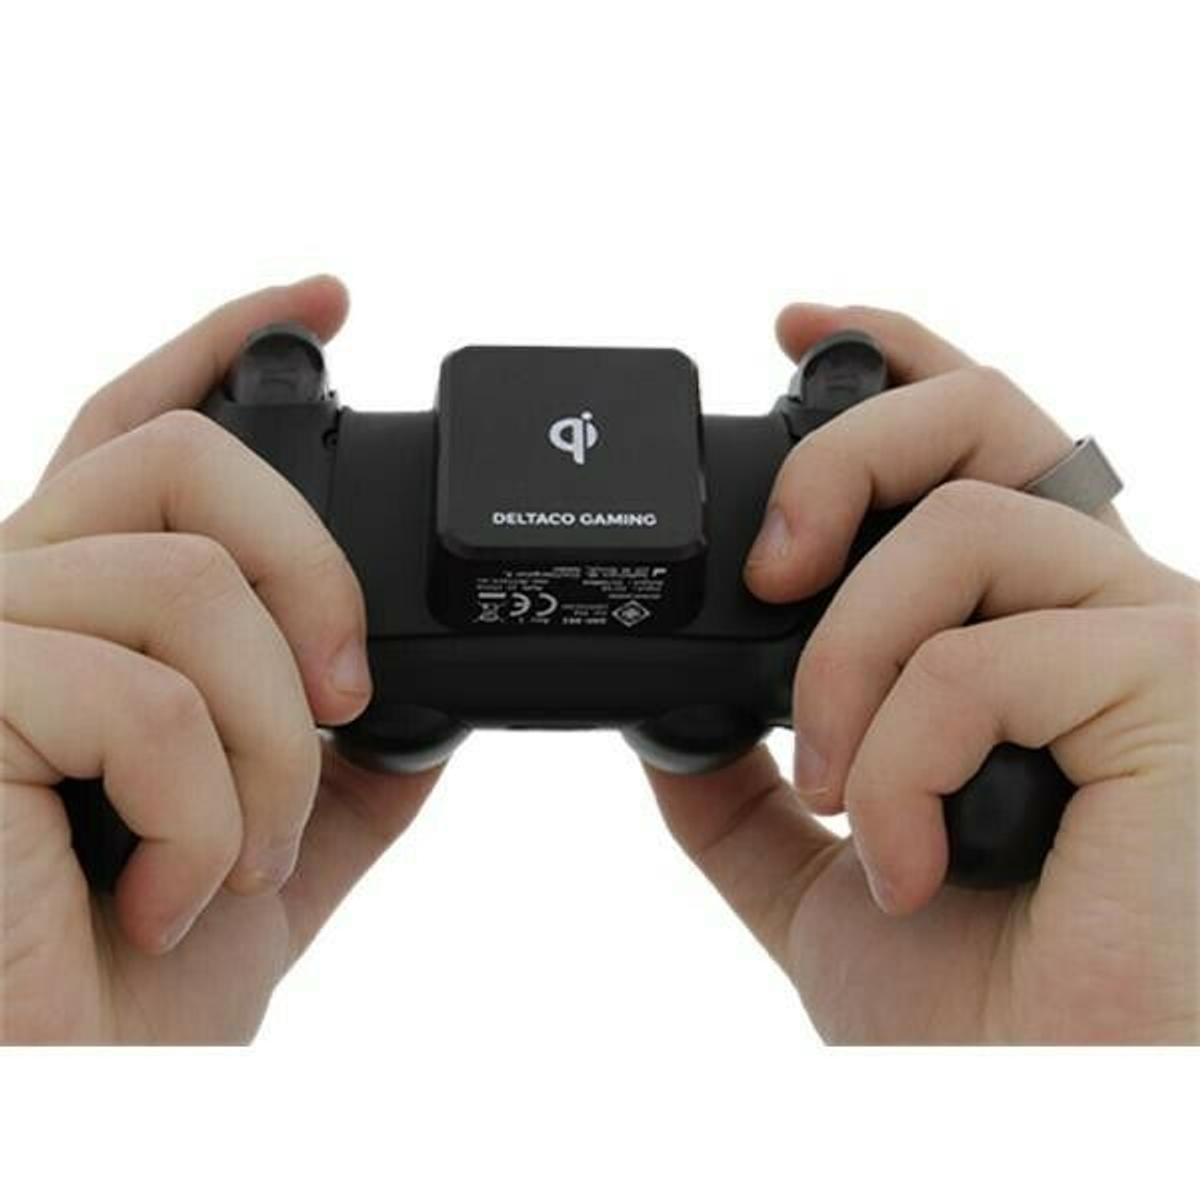 Wireless Qi-charger für den PS4-Controller, d in 54550 ...